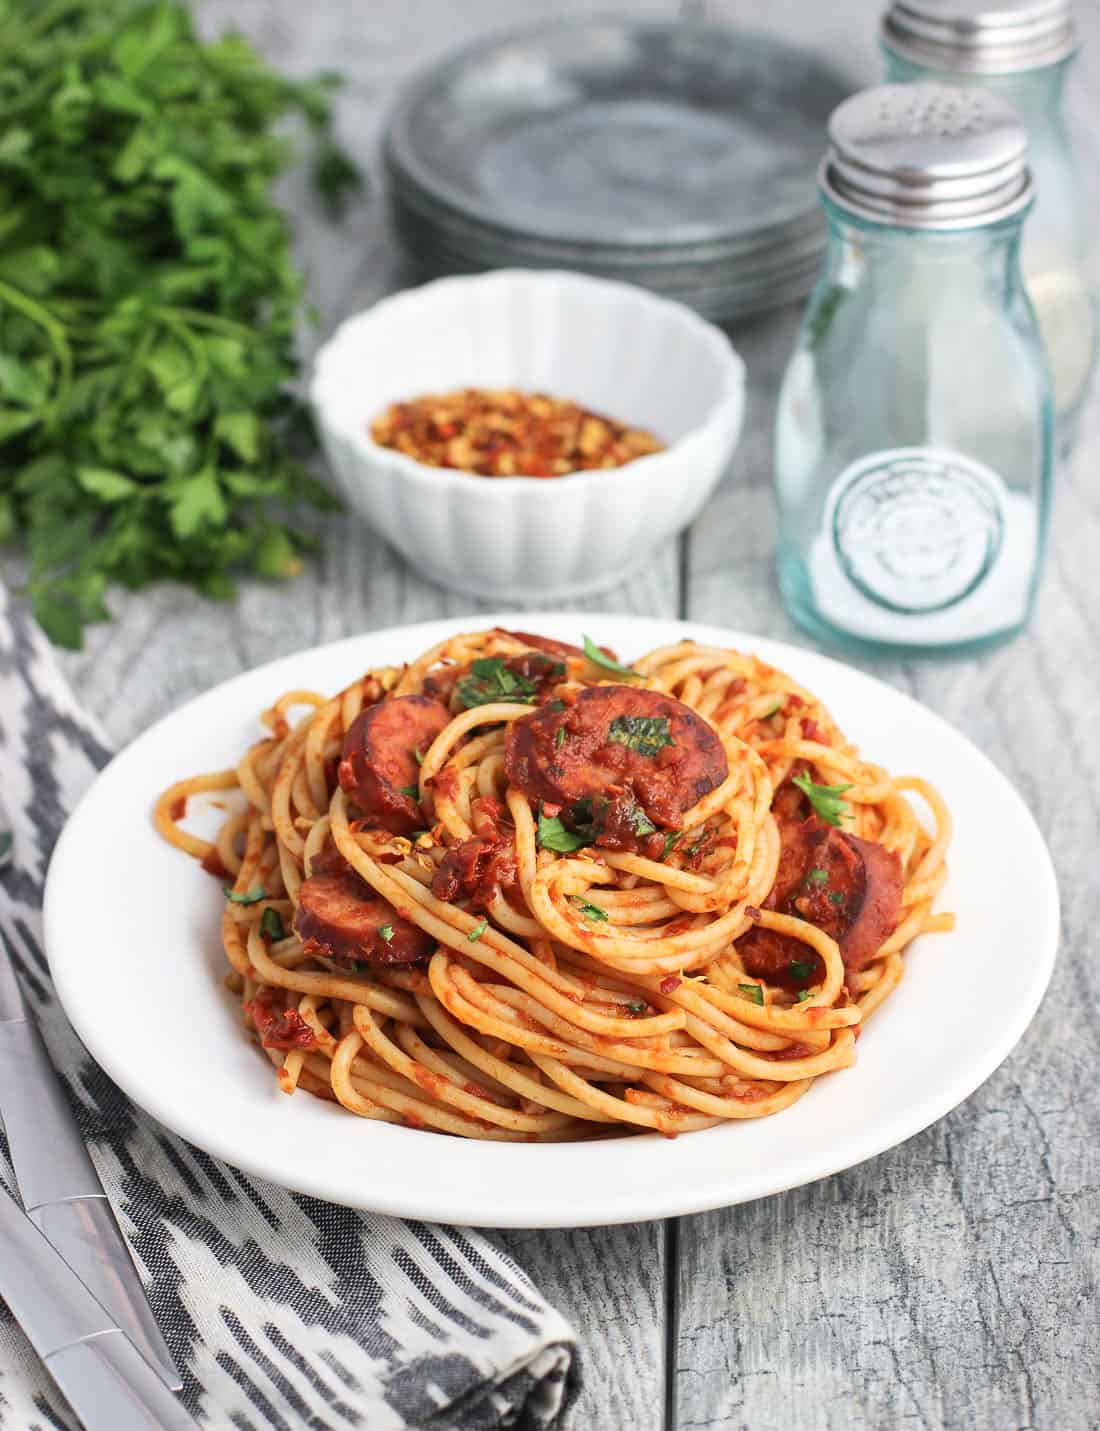 A serving of spaghetti fra diavolo with smoked sausage slices next to a bundle of fresh parsley, a bowl of crushed red pepper, and salt and pepper shakers